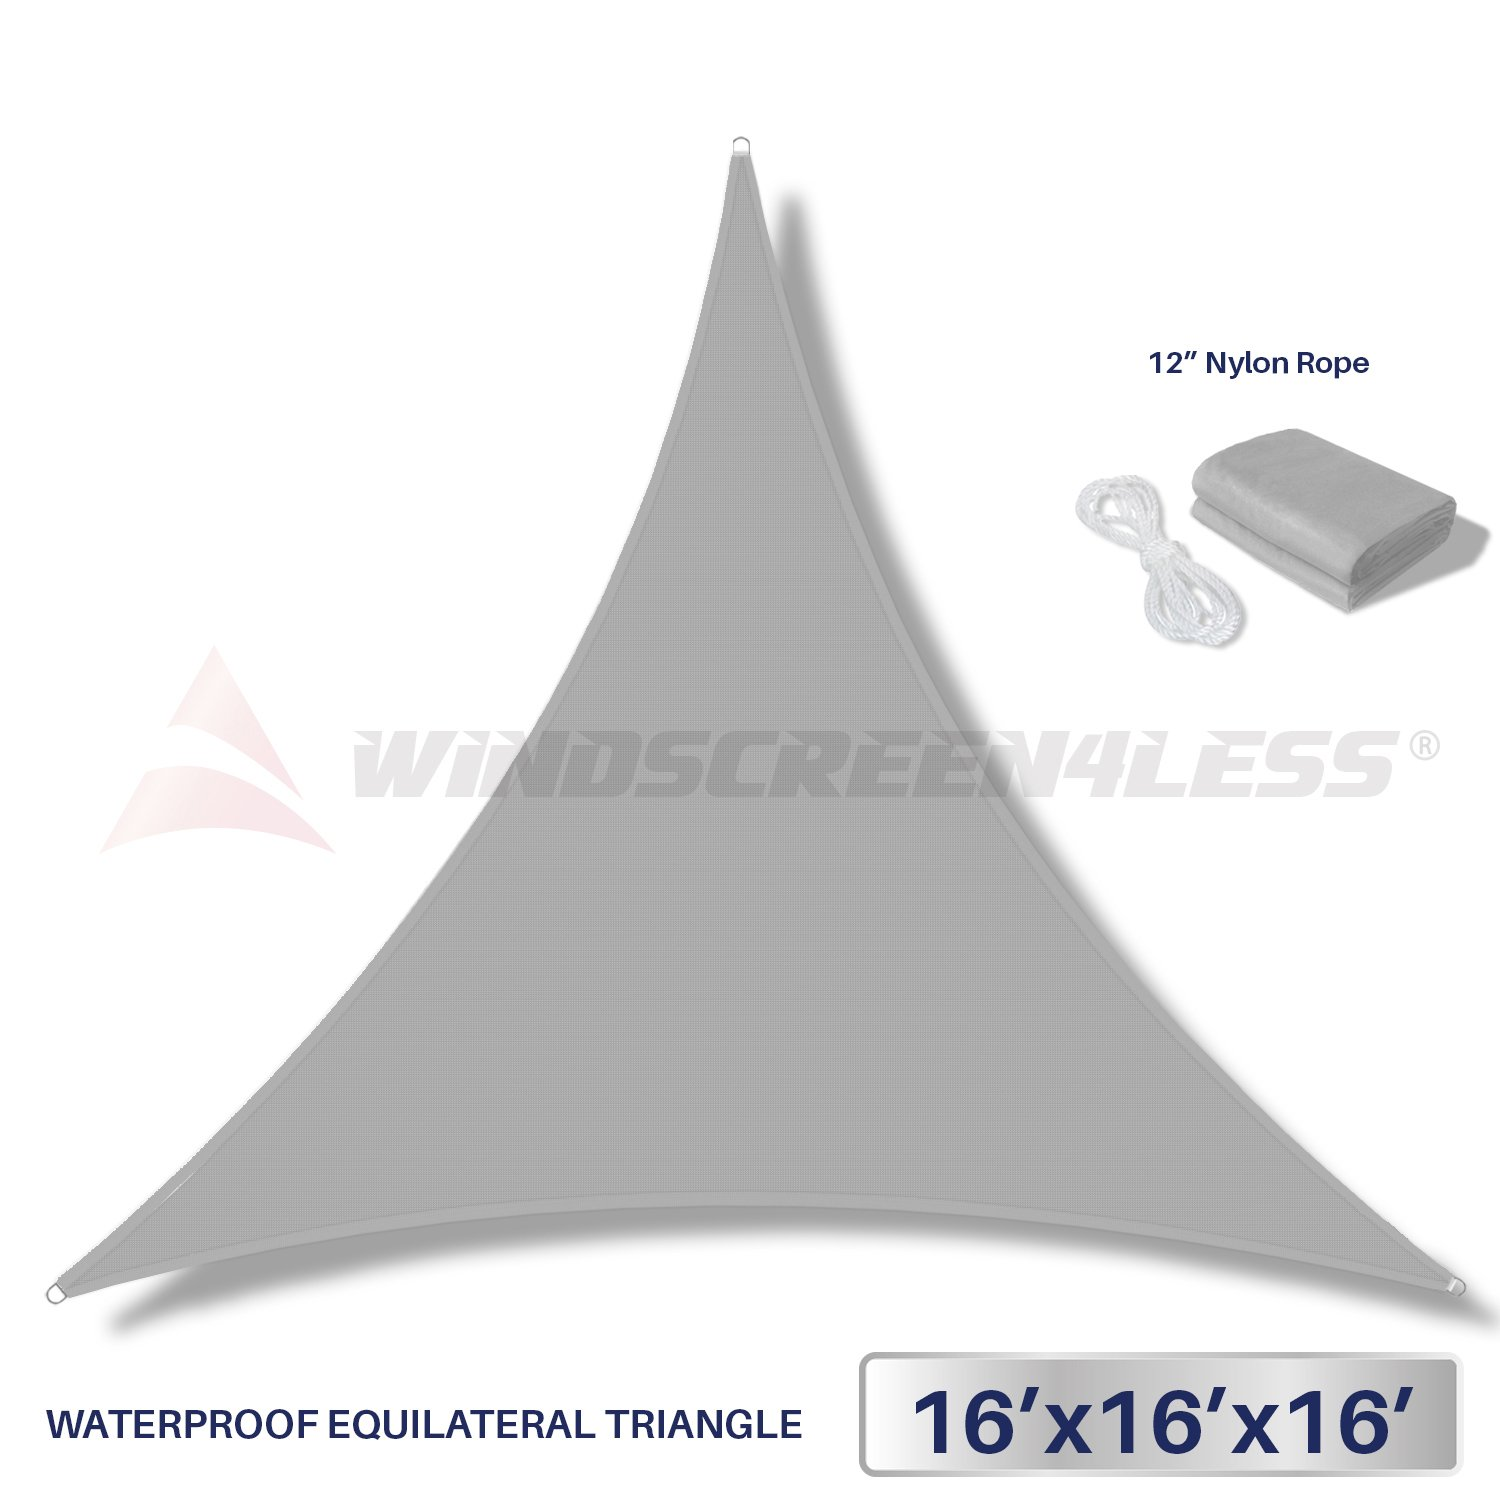 Windscreen4less Terylene Waterproof Sun Shade Sail UV Blocker Triangle Sunshade Patio Canopy Sail 16' x 16' x 16' in Color Light Grey